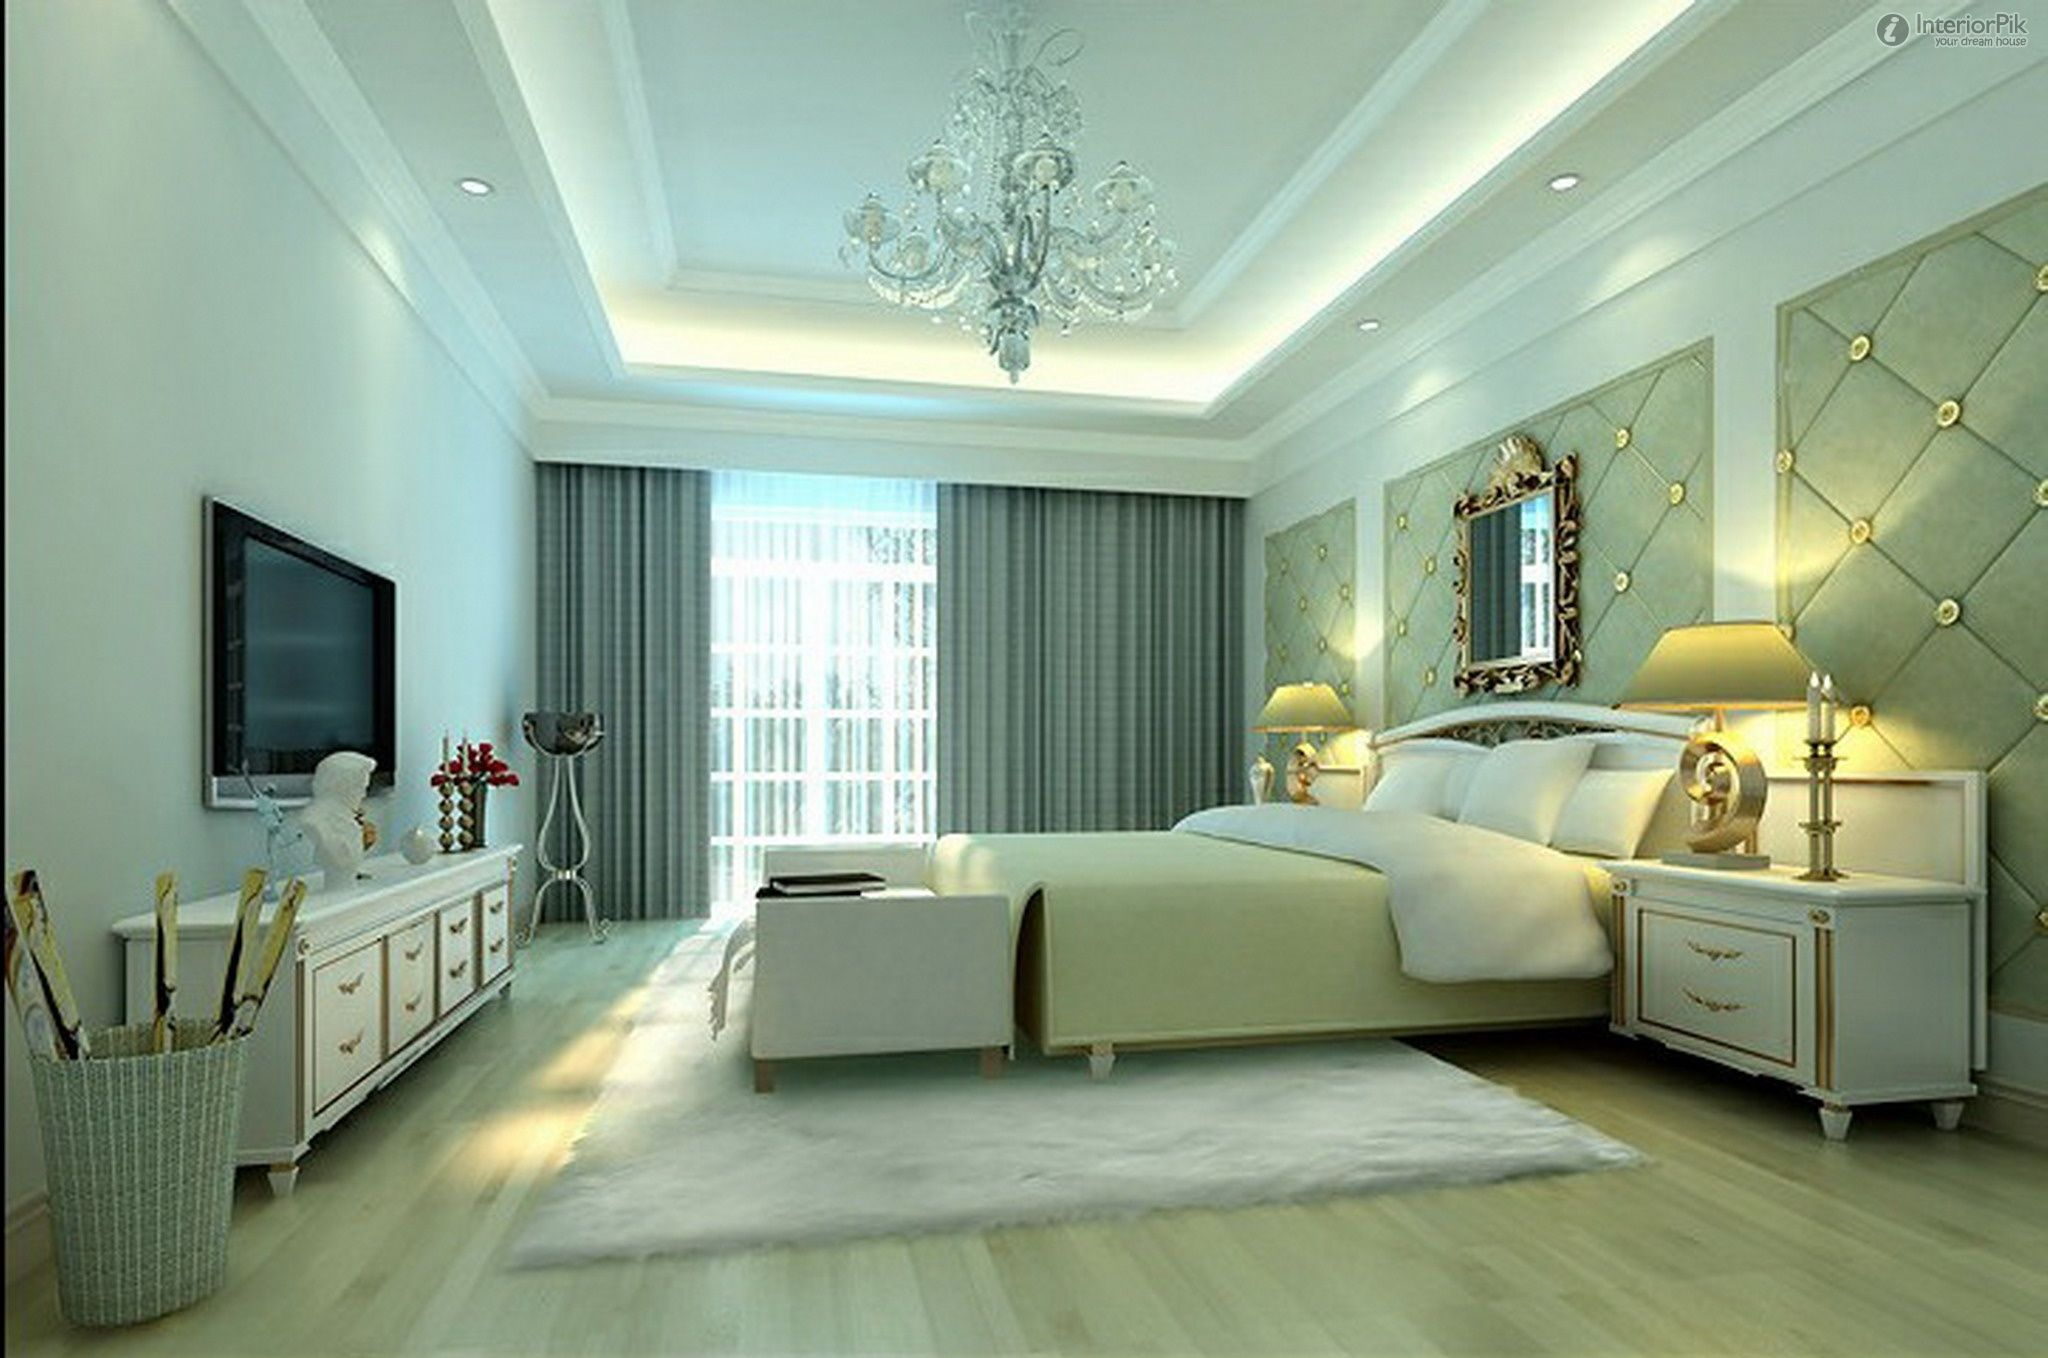 Master Bedroom Ceiling Designs Decoration Ceiling Decorations Bedroom Bedroom Ceiling Decorations ~ Dact